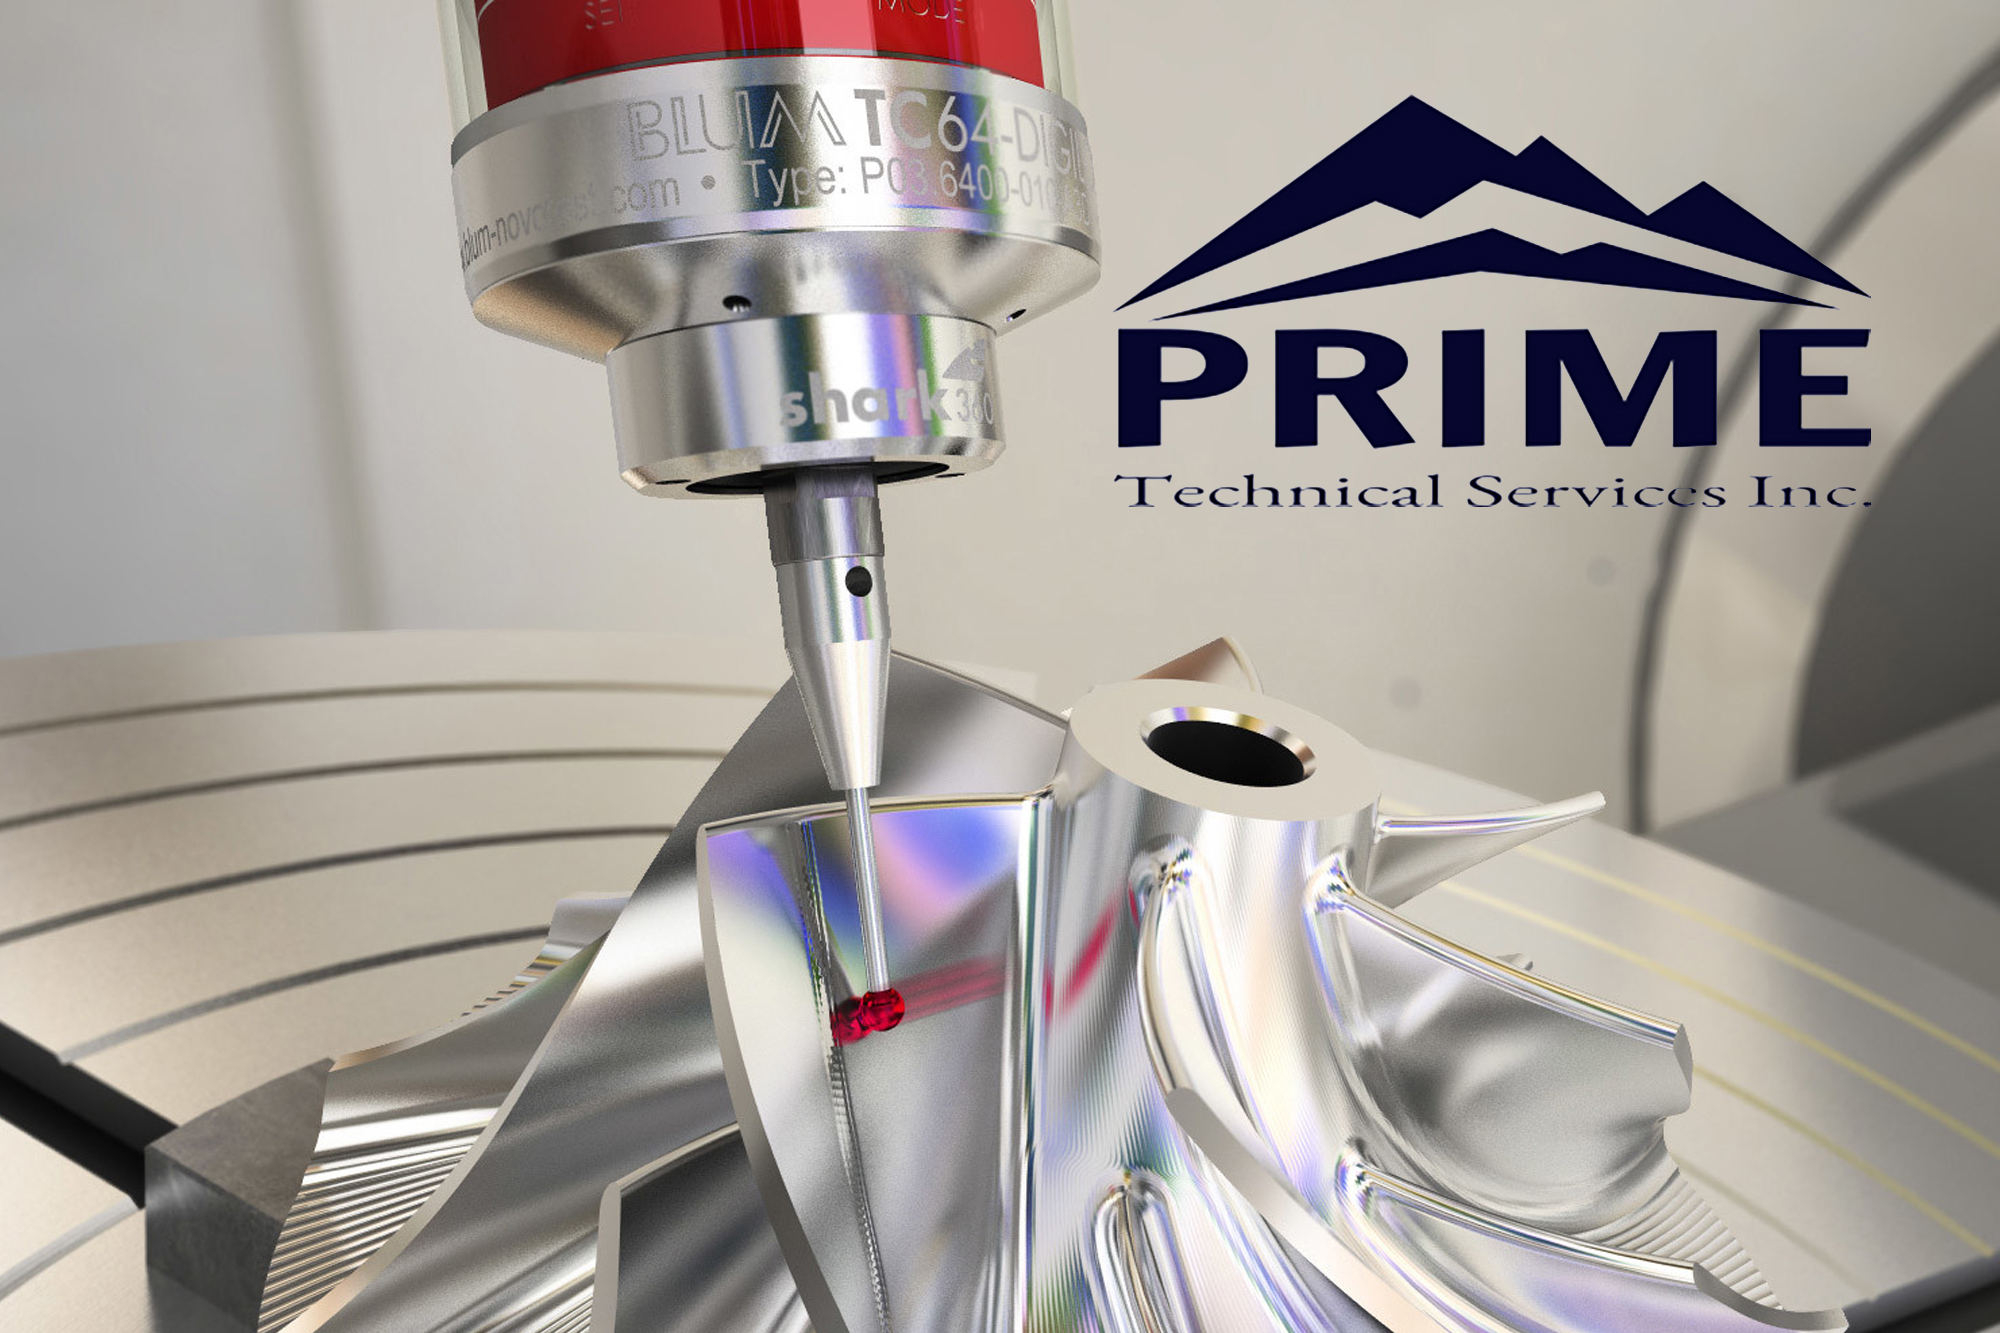 """We specialize in intelligent manufacturing with the integration of high quality products for machine tools that will help customers compete in the global market with ease. Our products can drastically reduce set up time, cycle time, and make it possible to run an unmanned or """"lights out"""" operation."""